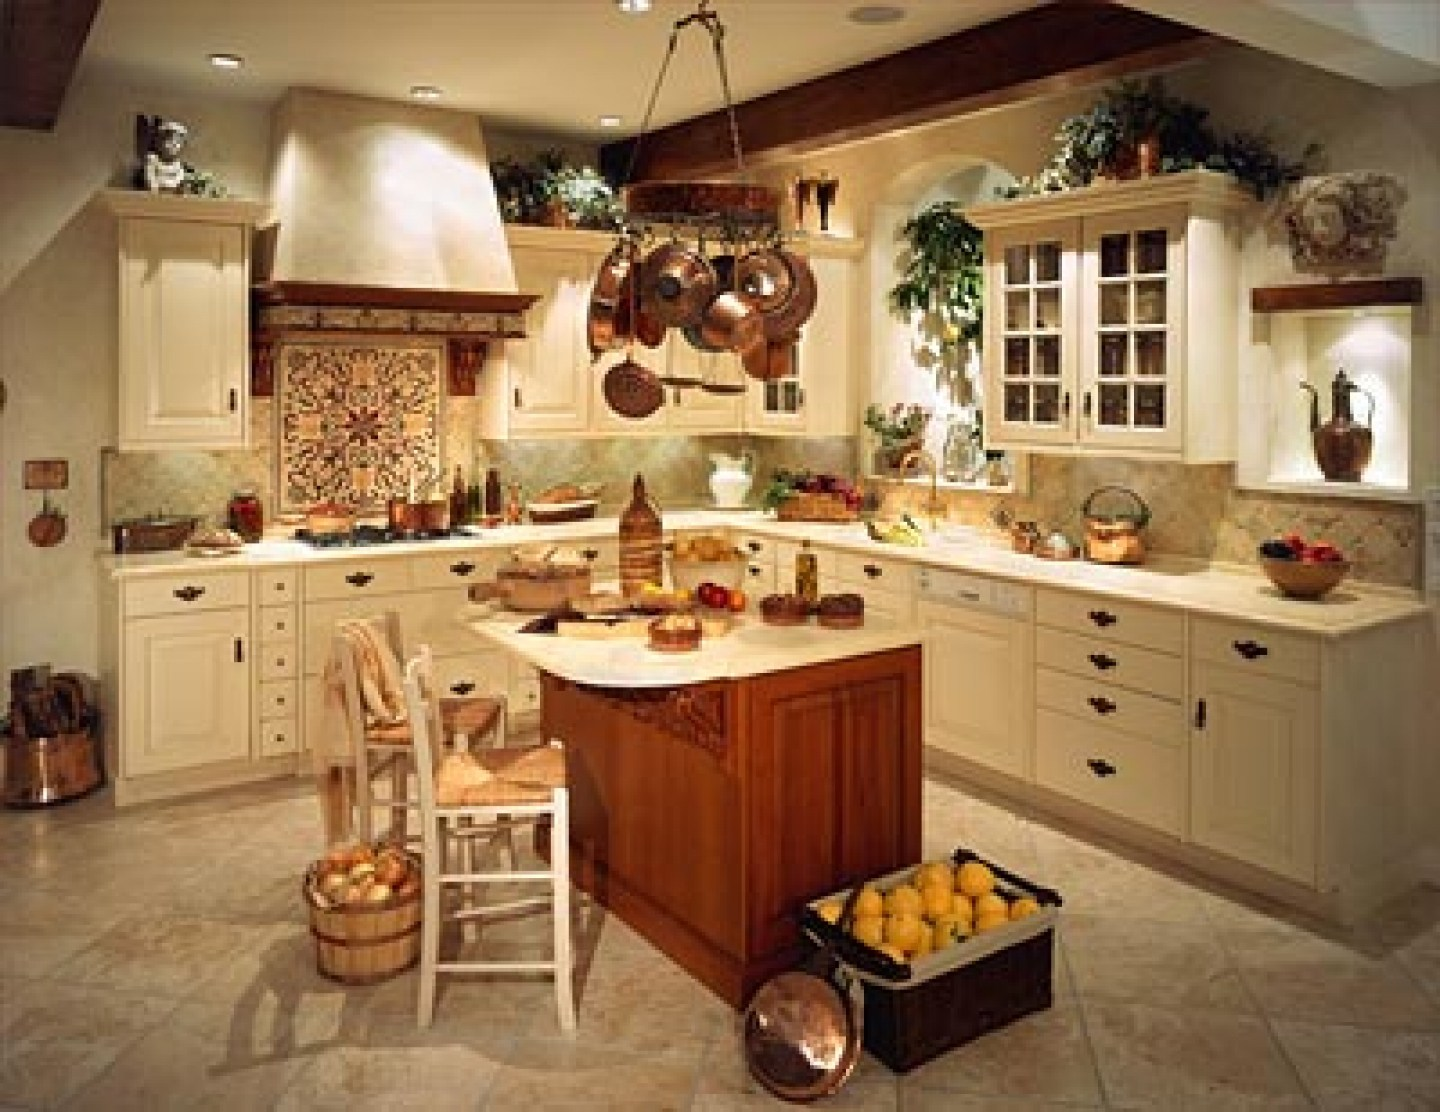 Cool Country Kitchen Ideas Of Fullsize Of Smothery Vintage On A Budget Acnn Decor